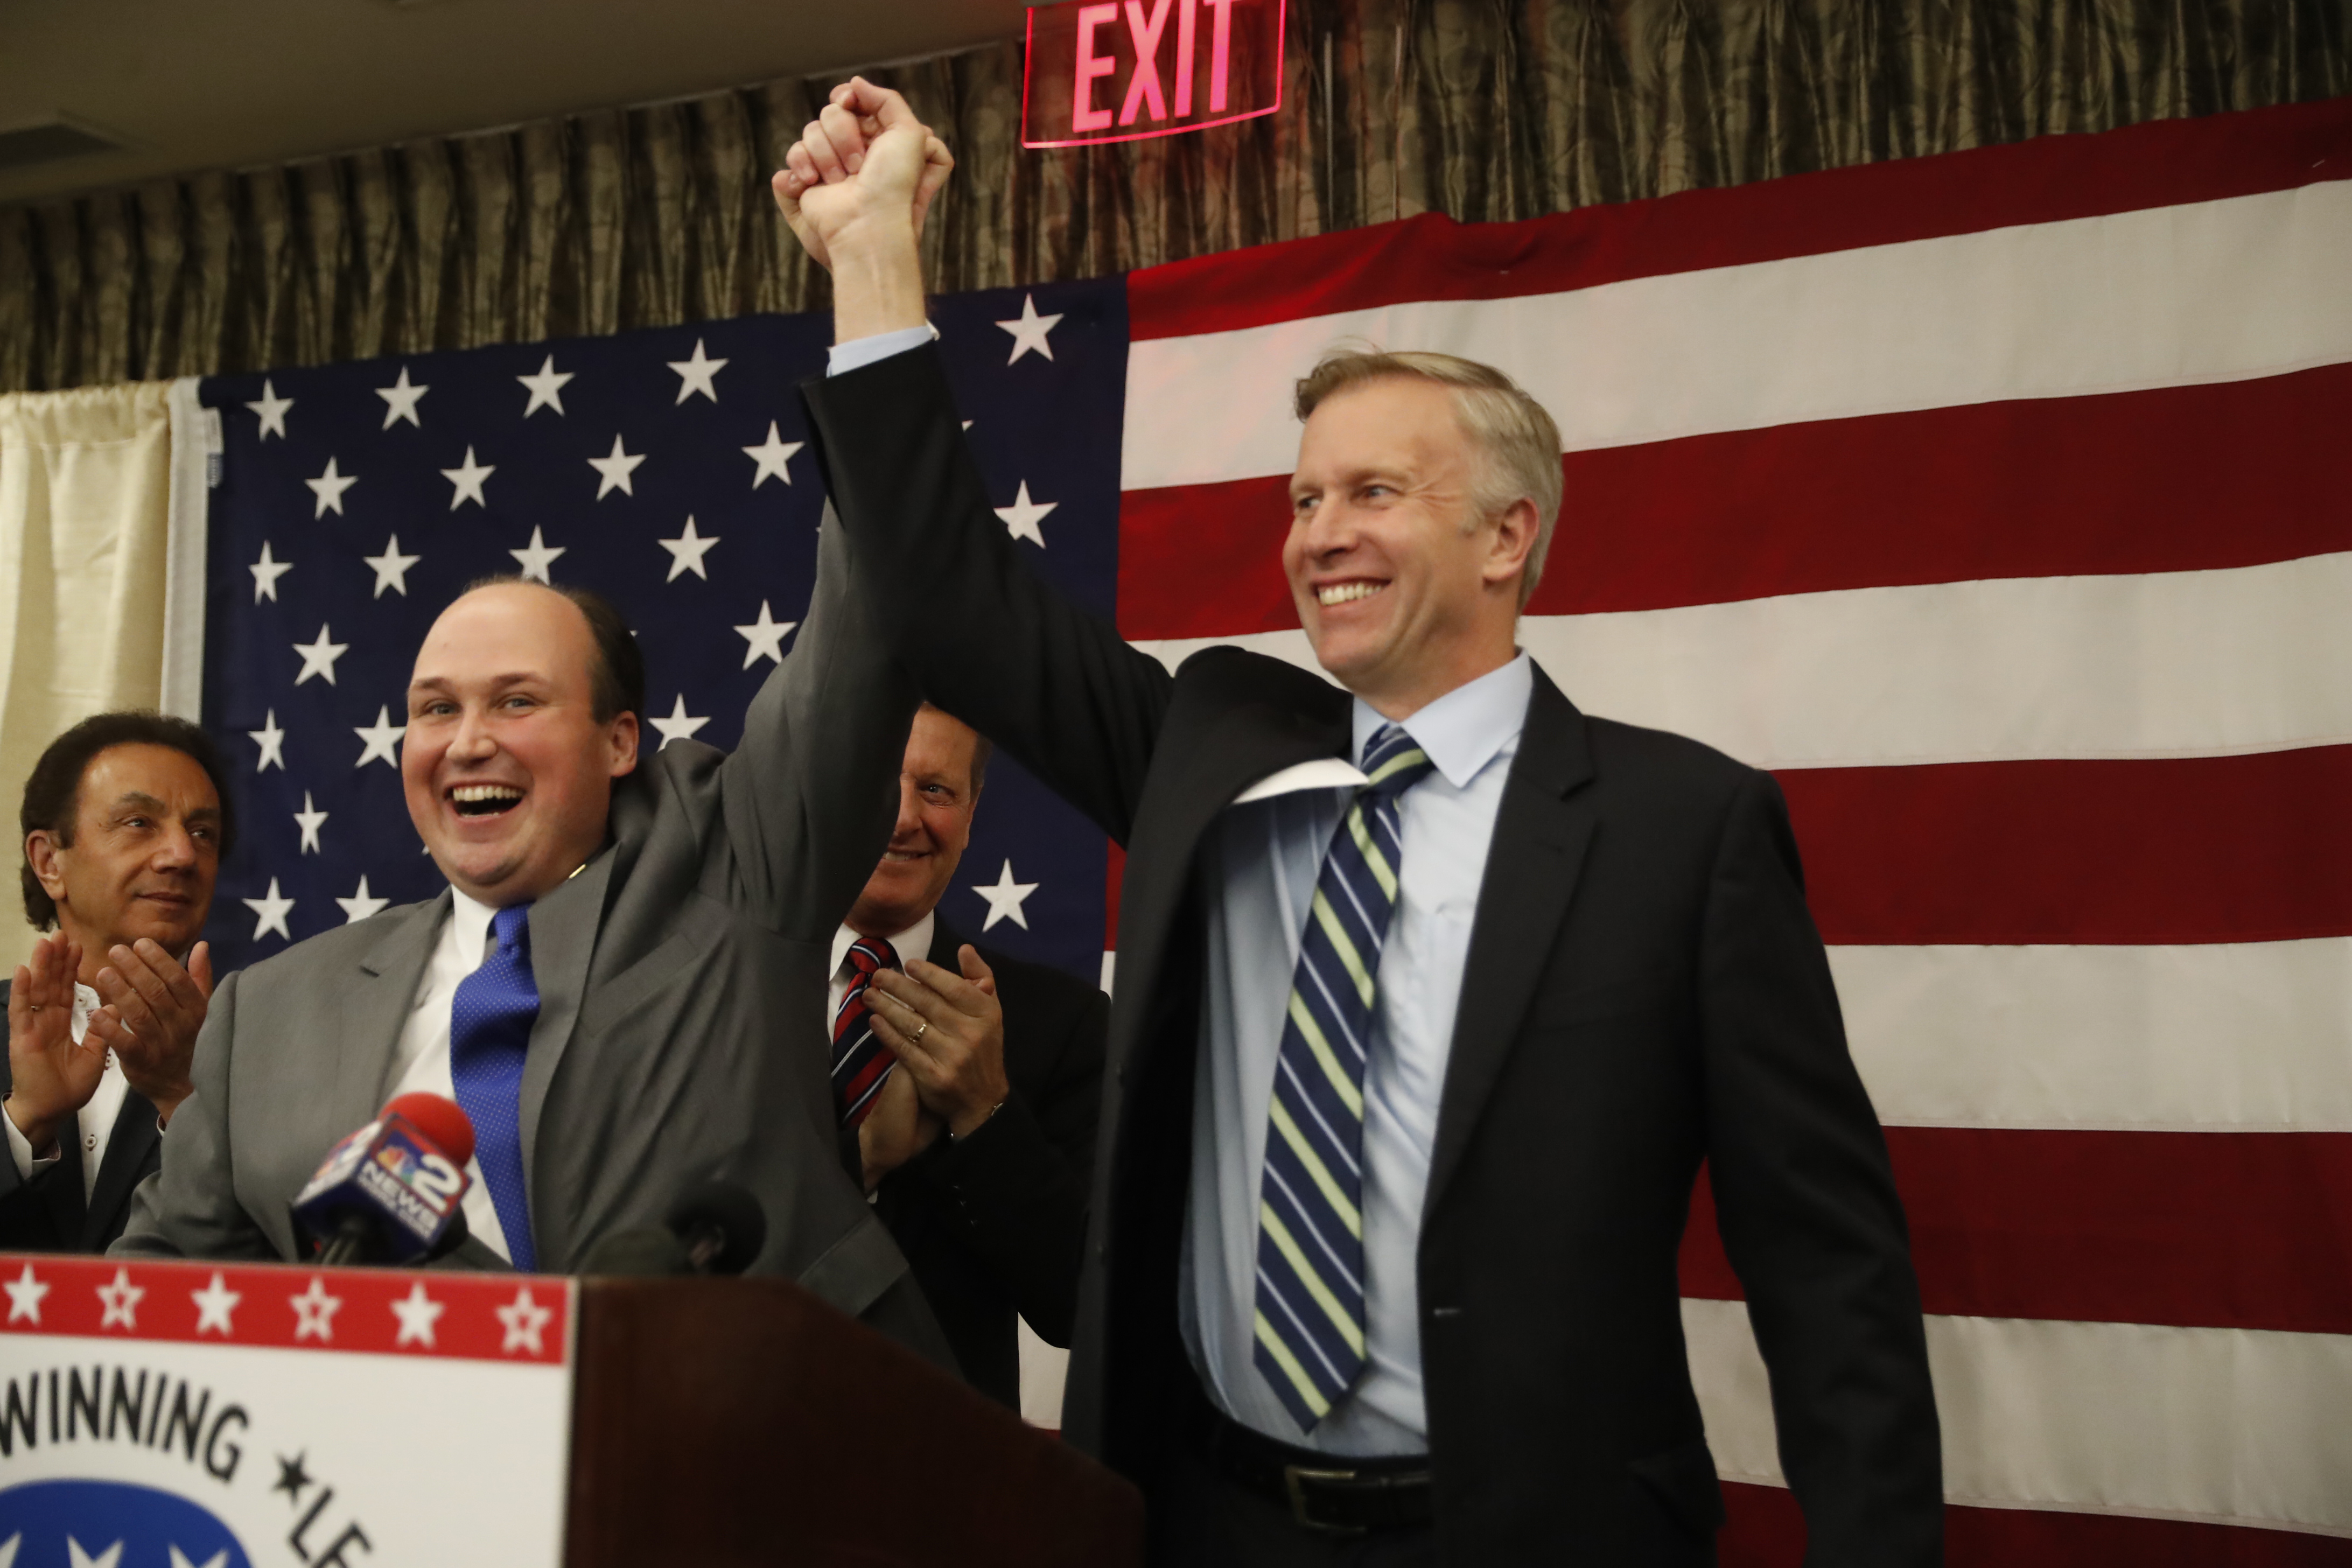 Erie County Republican Committee Chairman Nick Langworthy raises Chris Jacobs' arm in victory after Jacobs was declared the winner in the 60th District State Senate race. (Harry Scull Jr./Buffalo News)